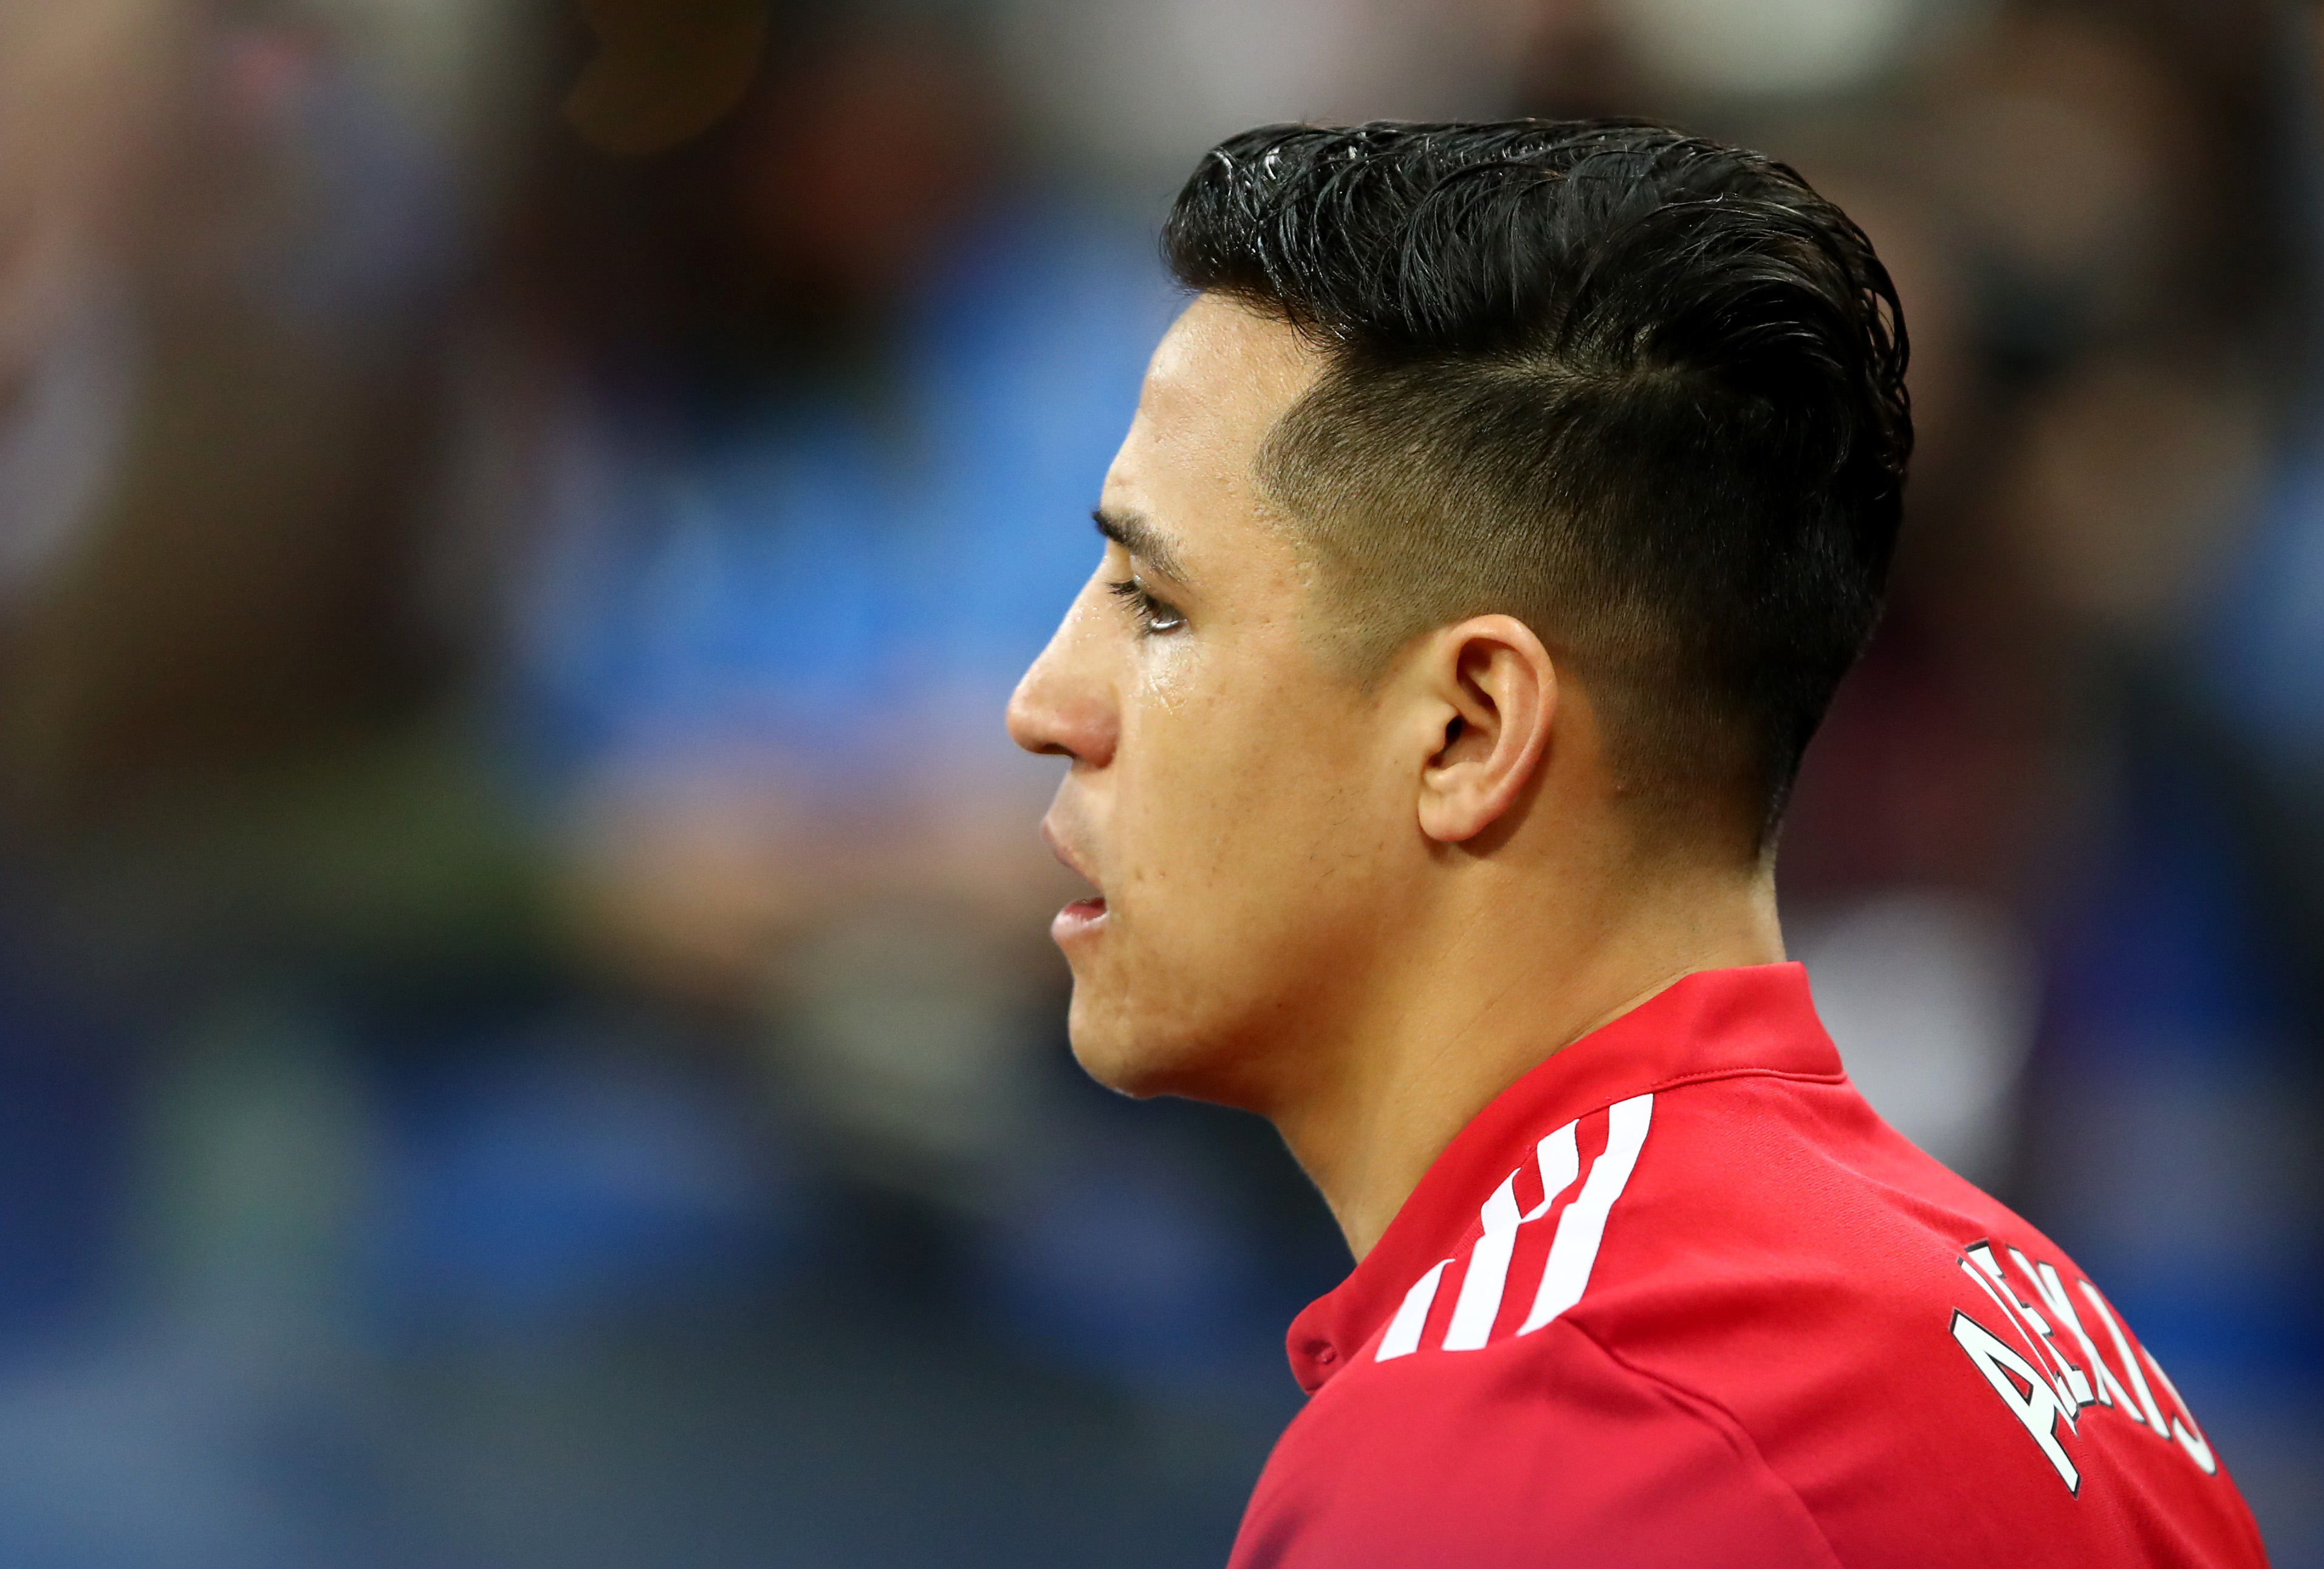 Alexis Sanchez Haircut 2018